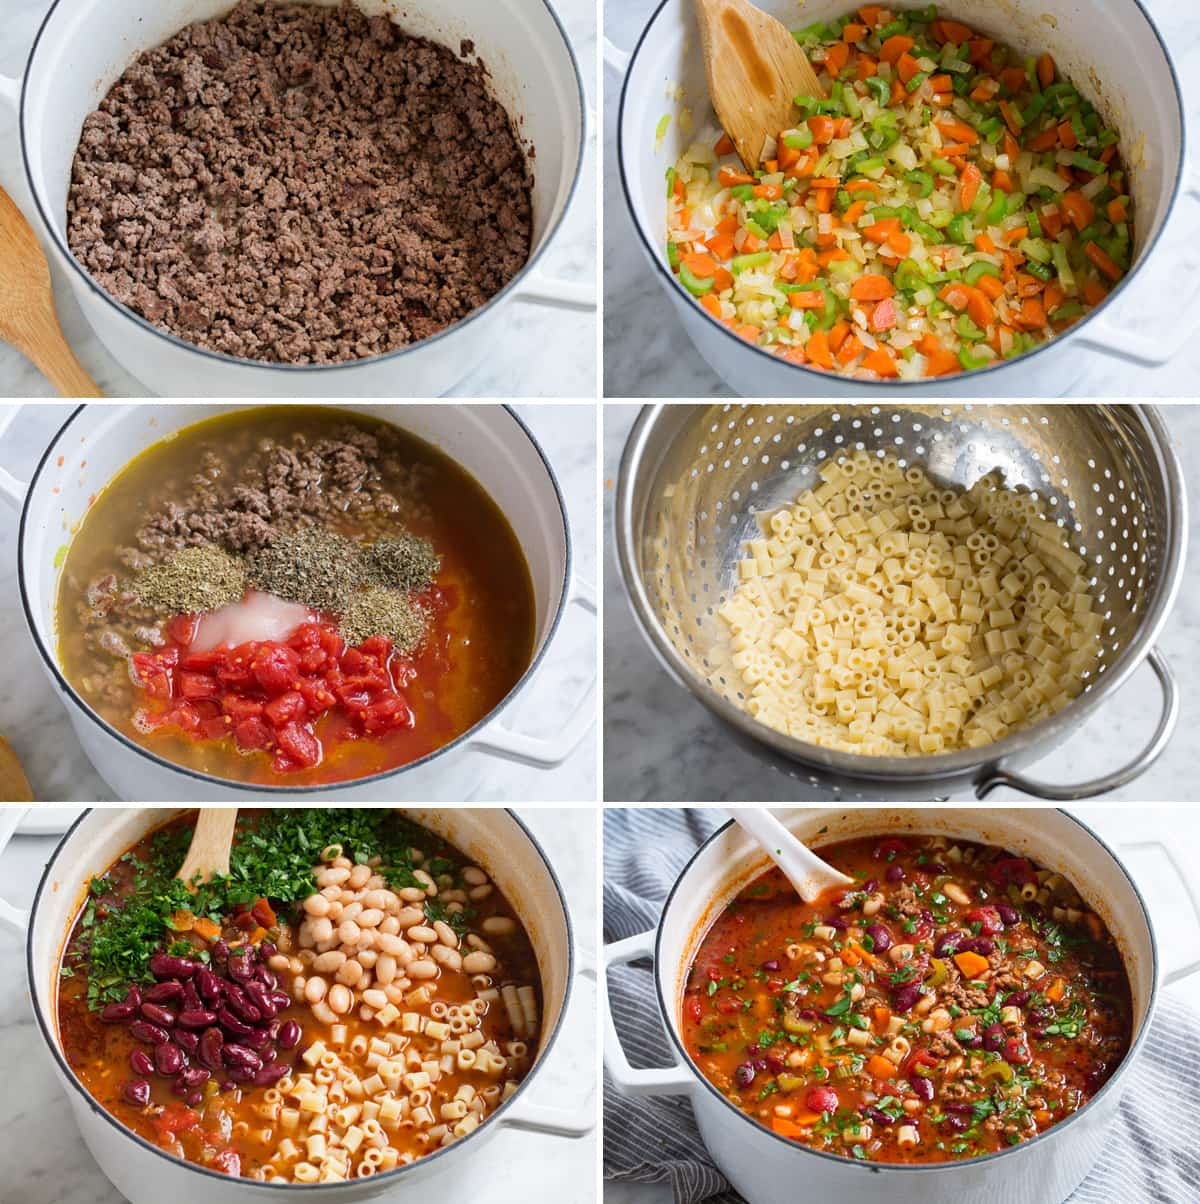 Image showing steps of how to cook pasta fagioli in a pot.